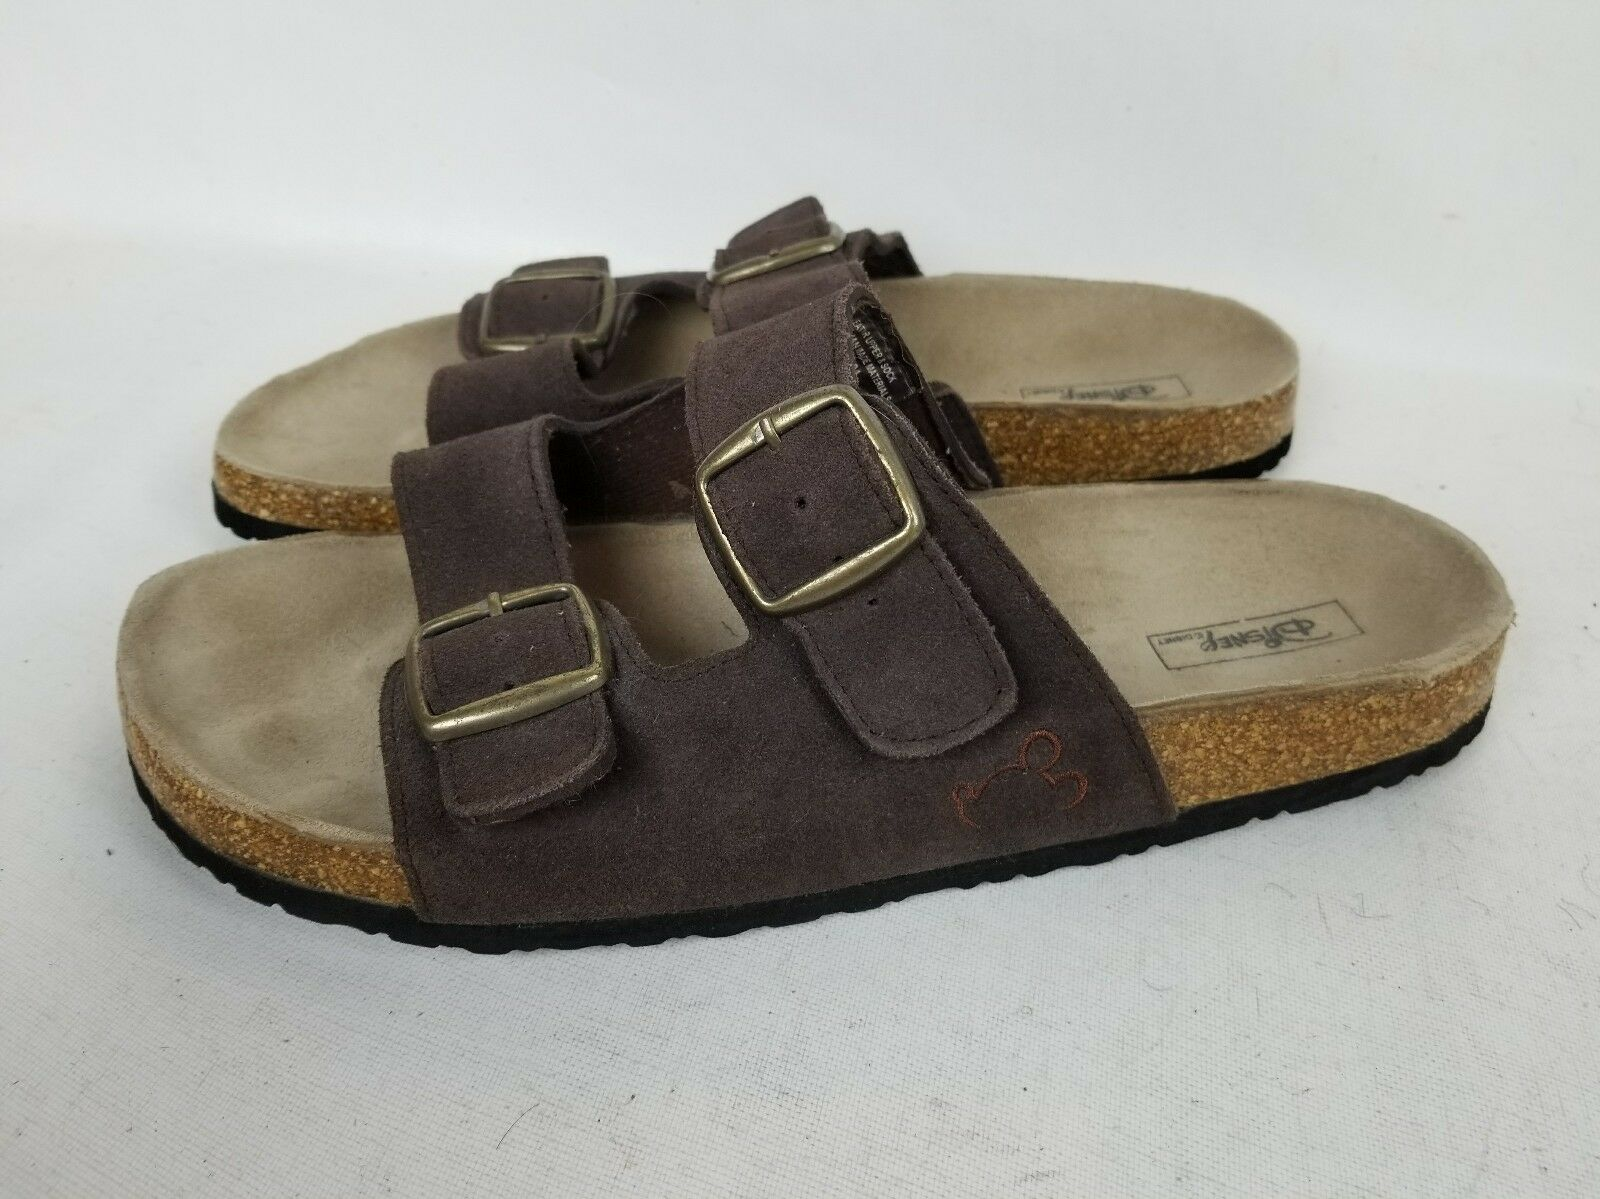 MENS DISNEY COMFORT SLIP-ON BROWN SUEDE LEATHER SANDALS WORK SHOES SIZE 12